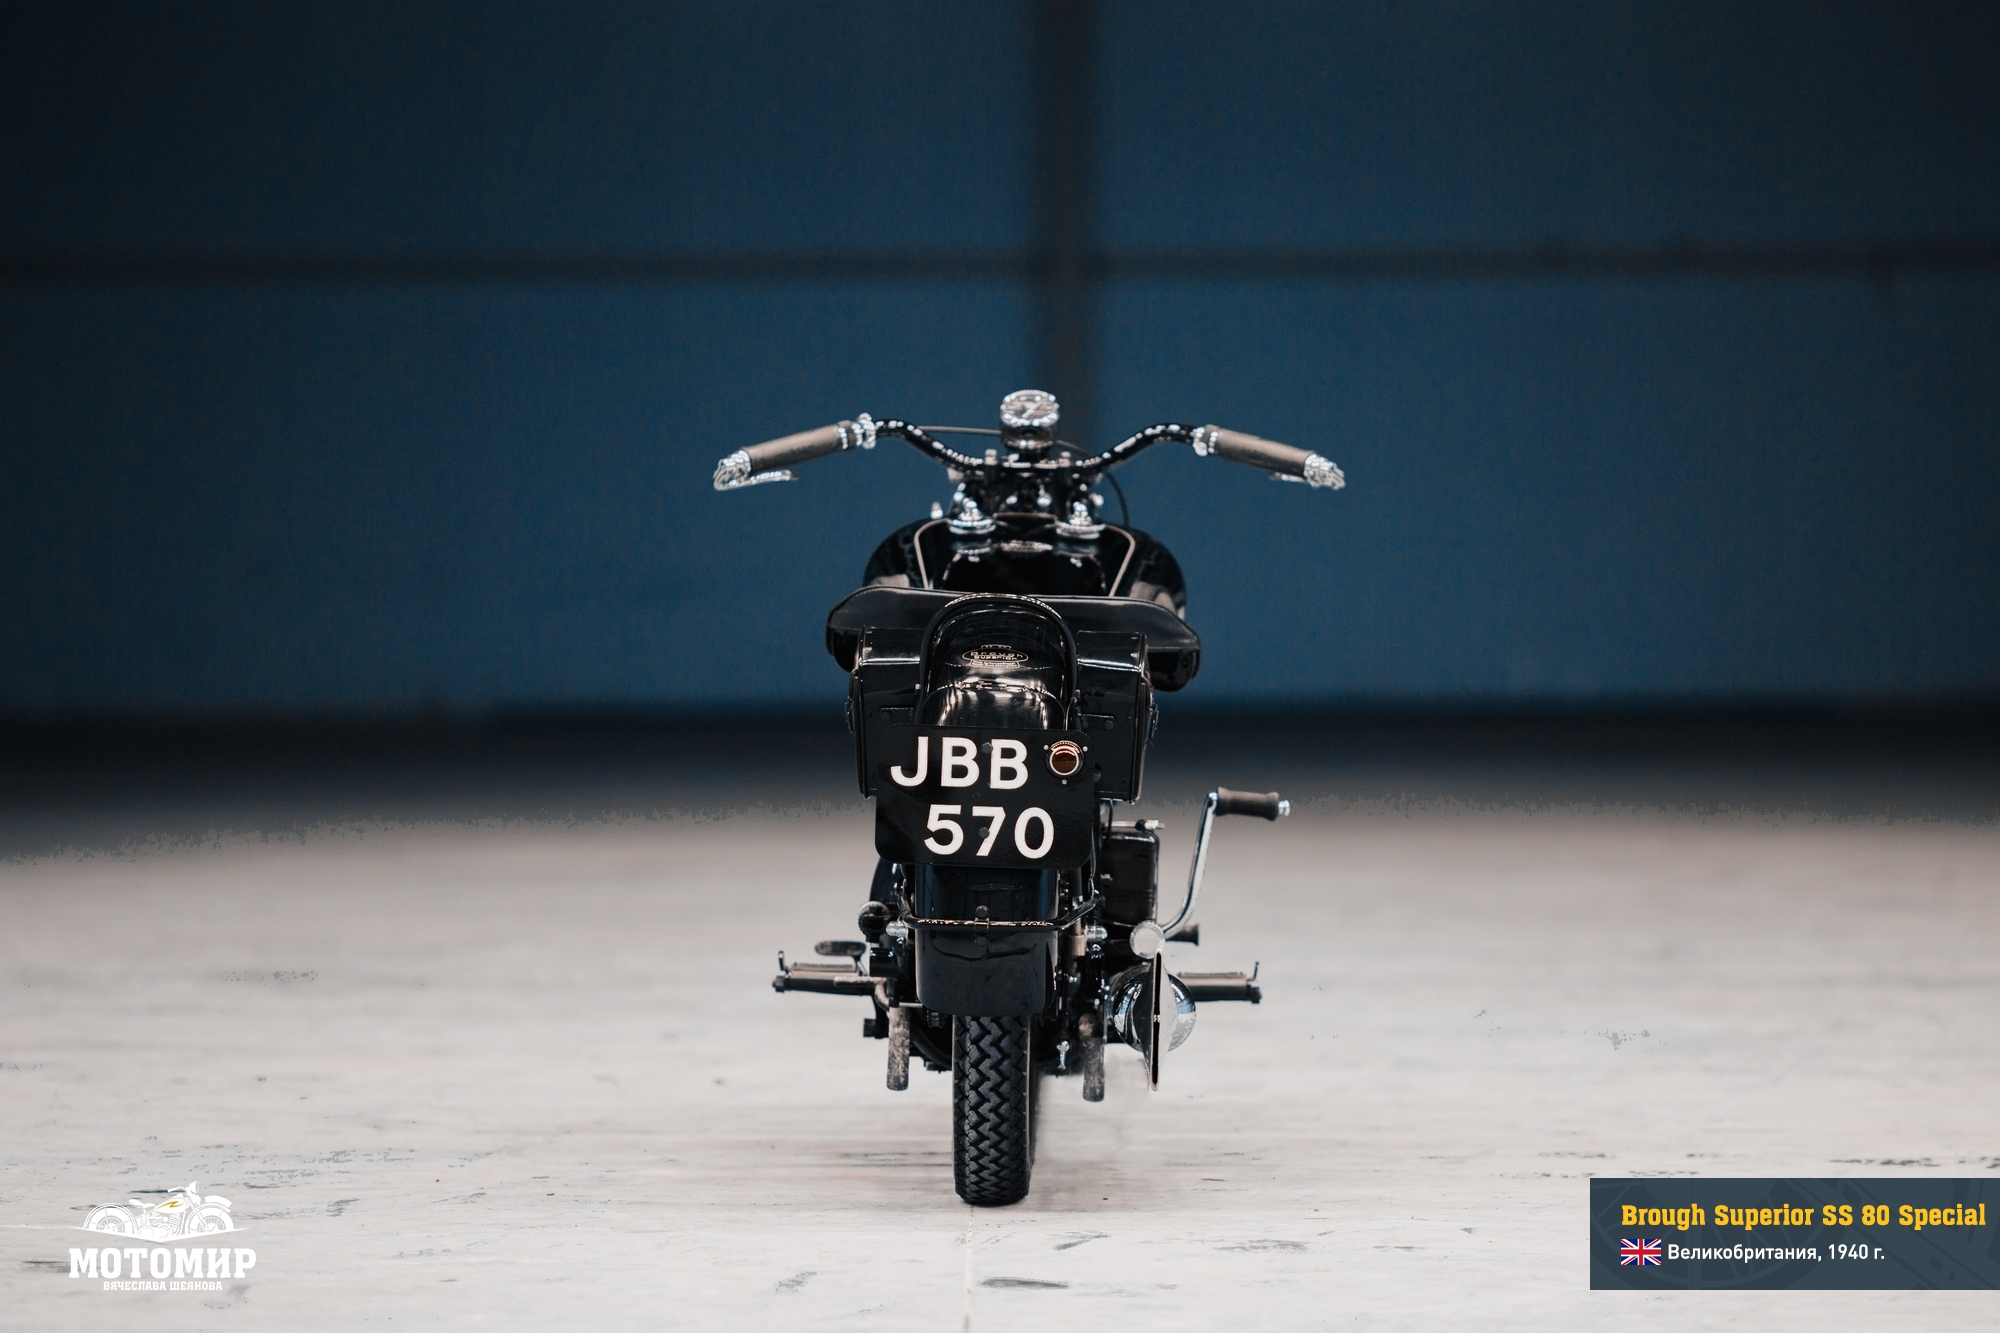 brough-superior-ss-80-201502-web-03